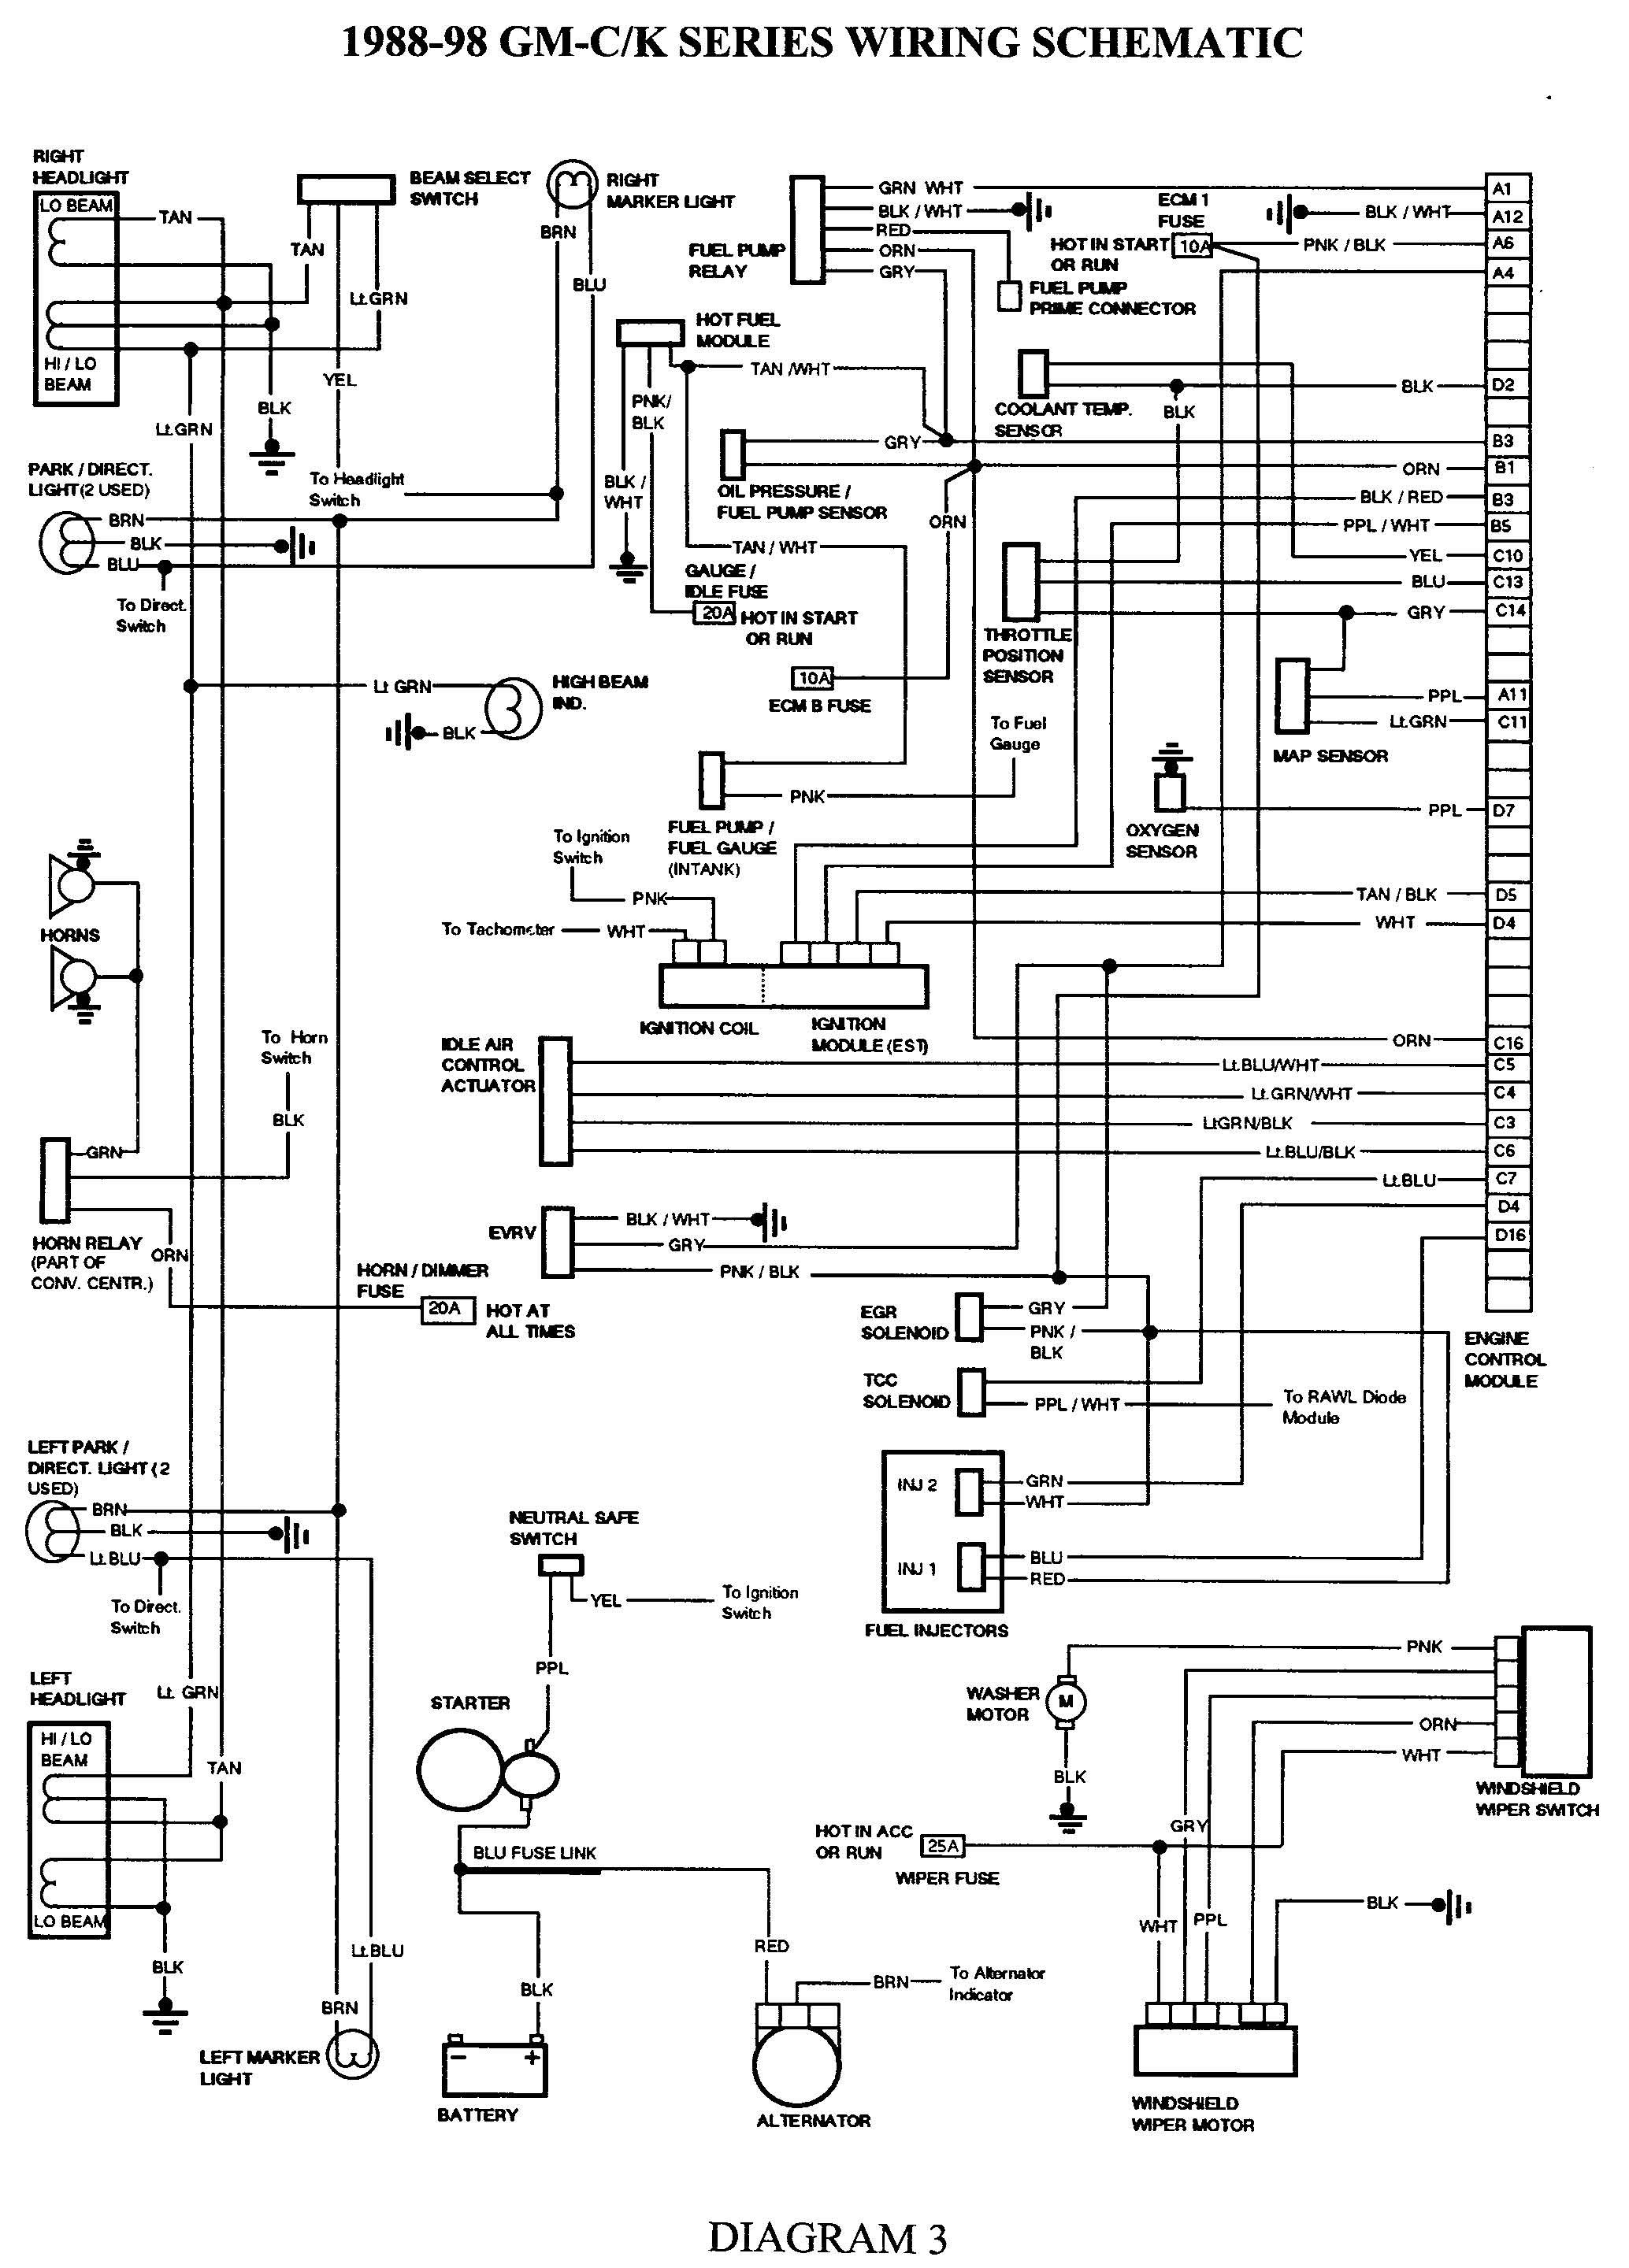 b2f2e5dbdc07dada83ef514f6d4ce3d4 gmc truck wiring diagrams on gm wiring harness diagram 88 98 kc 85 chevy truck wiring harness at gsmx.co